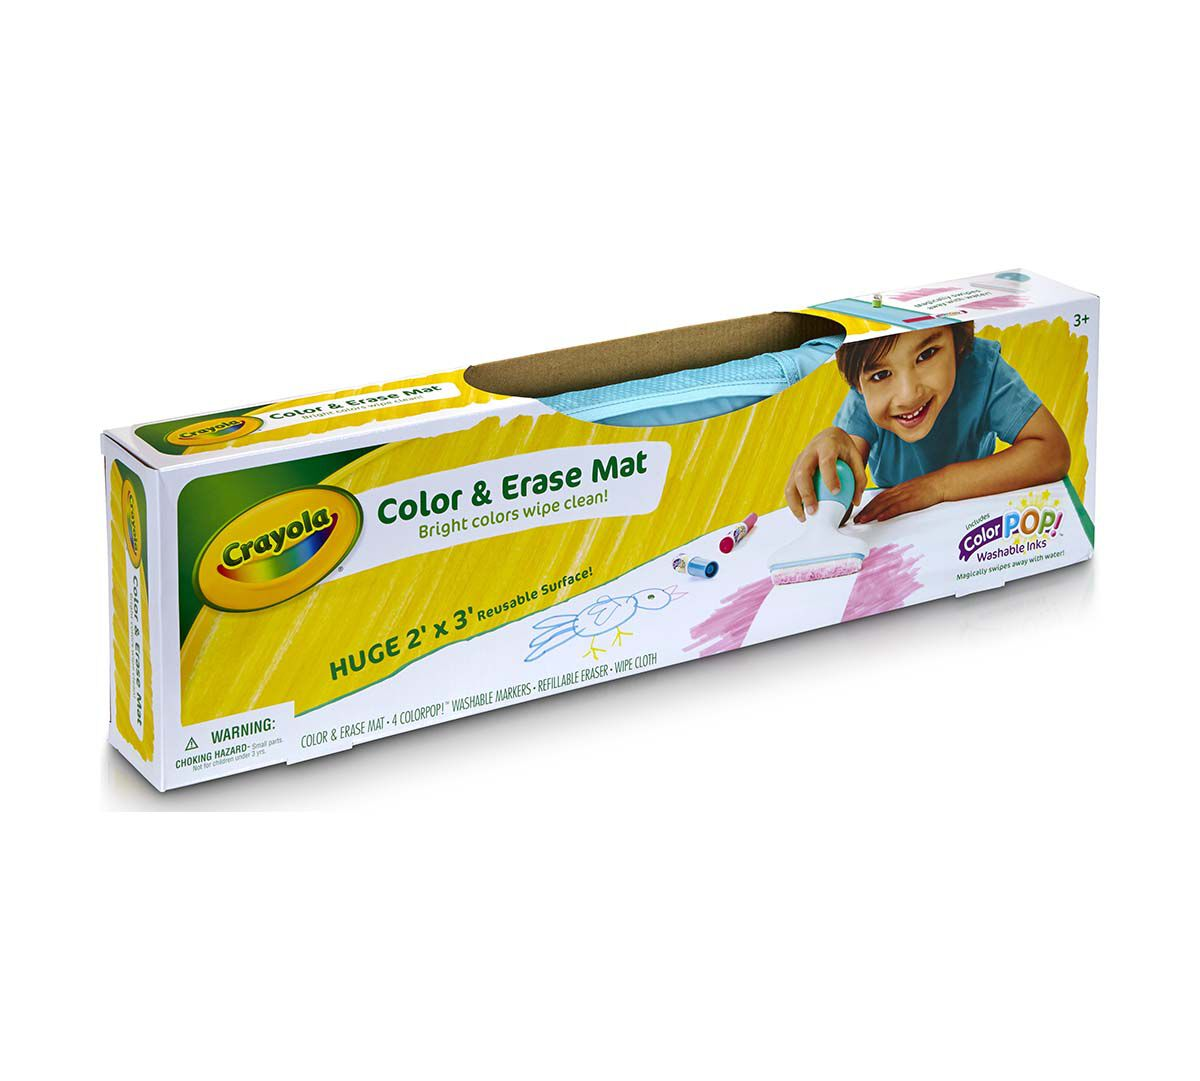 Color Erase Mat